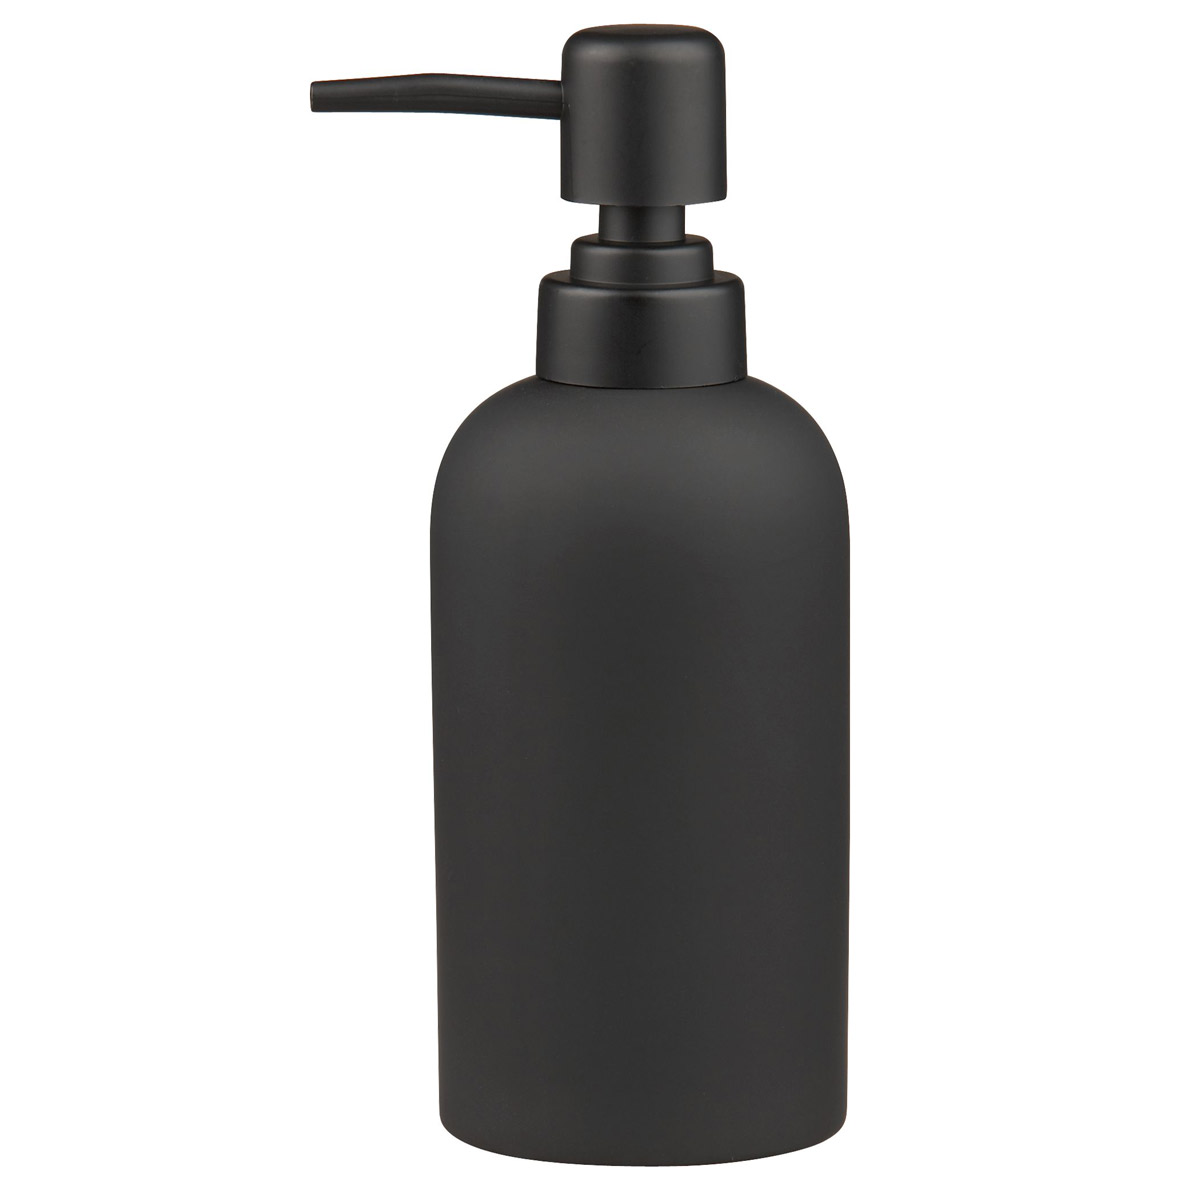 Black Automatic Soap Dispenser Black Rubber Coated Soap Dispenser The Green Head